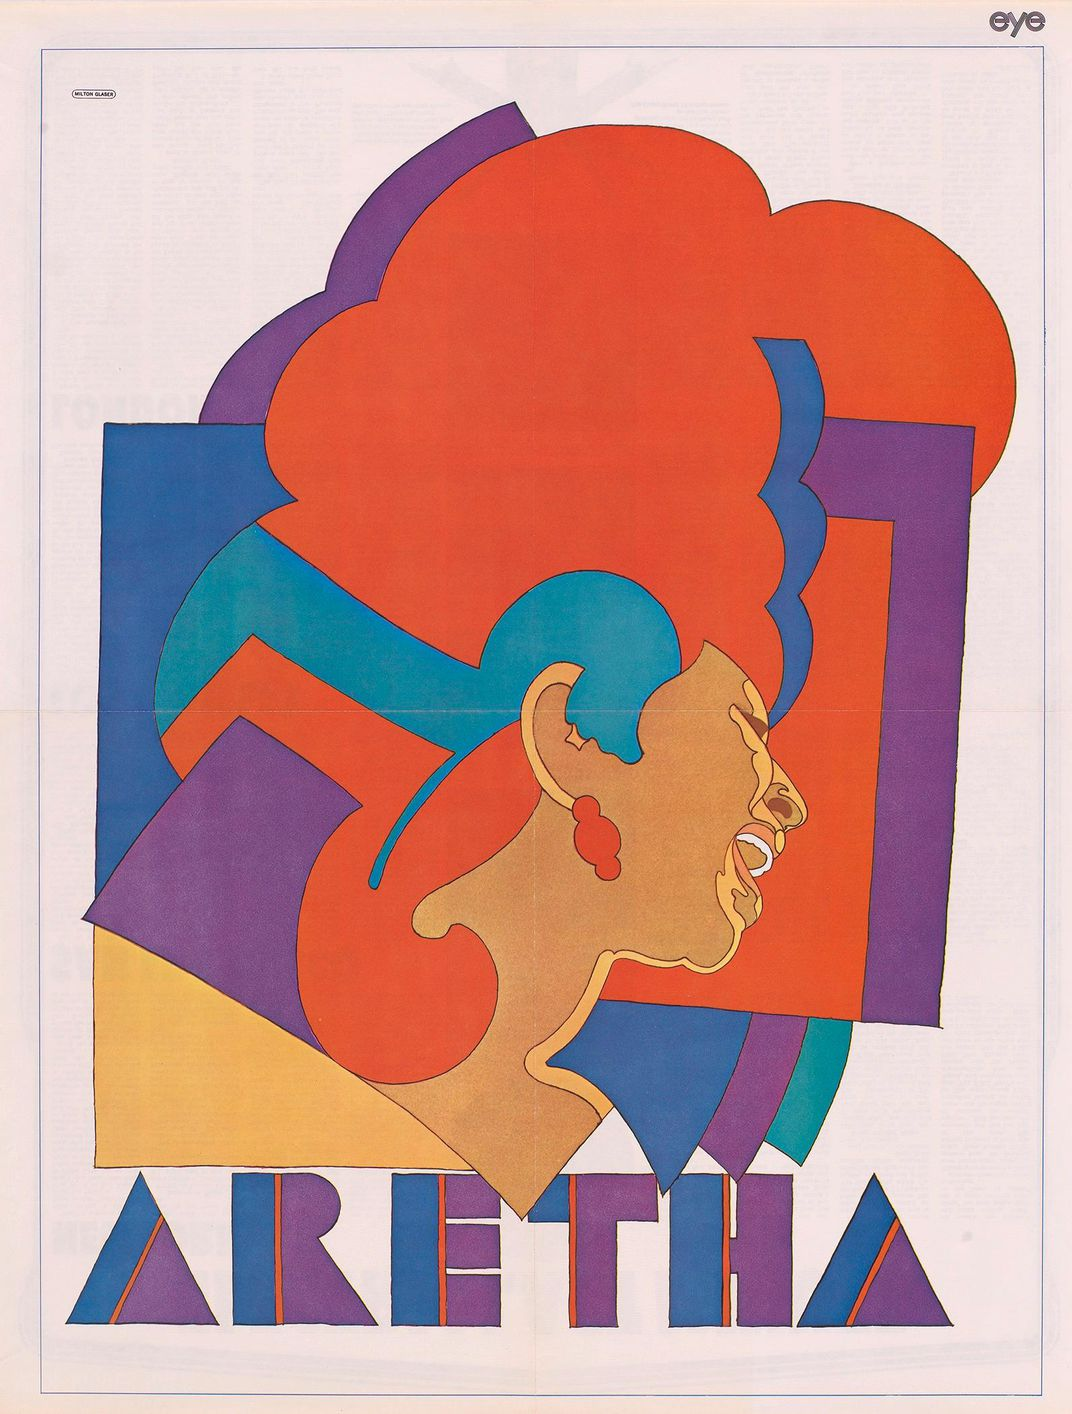 Aretha Franklin by Milton Glaser